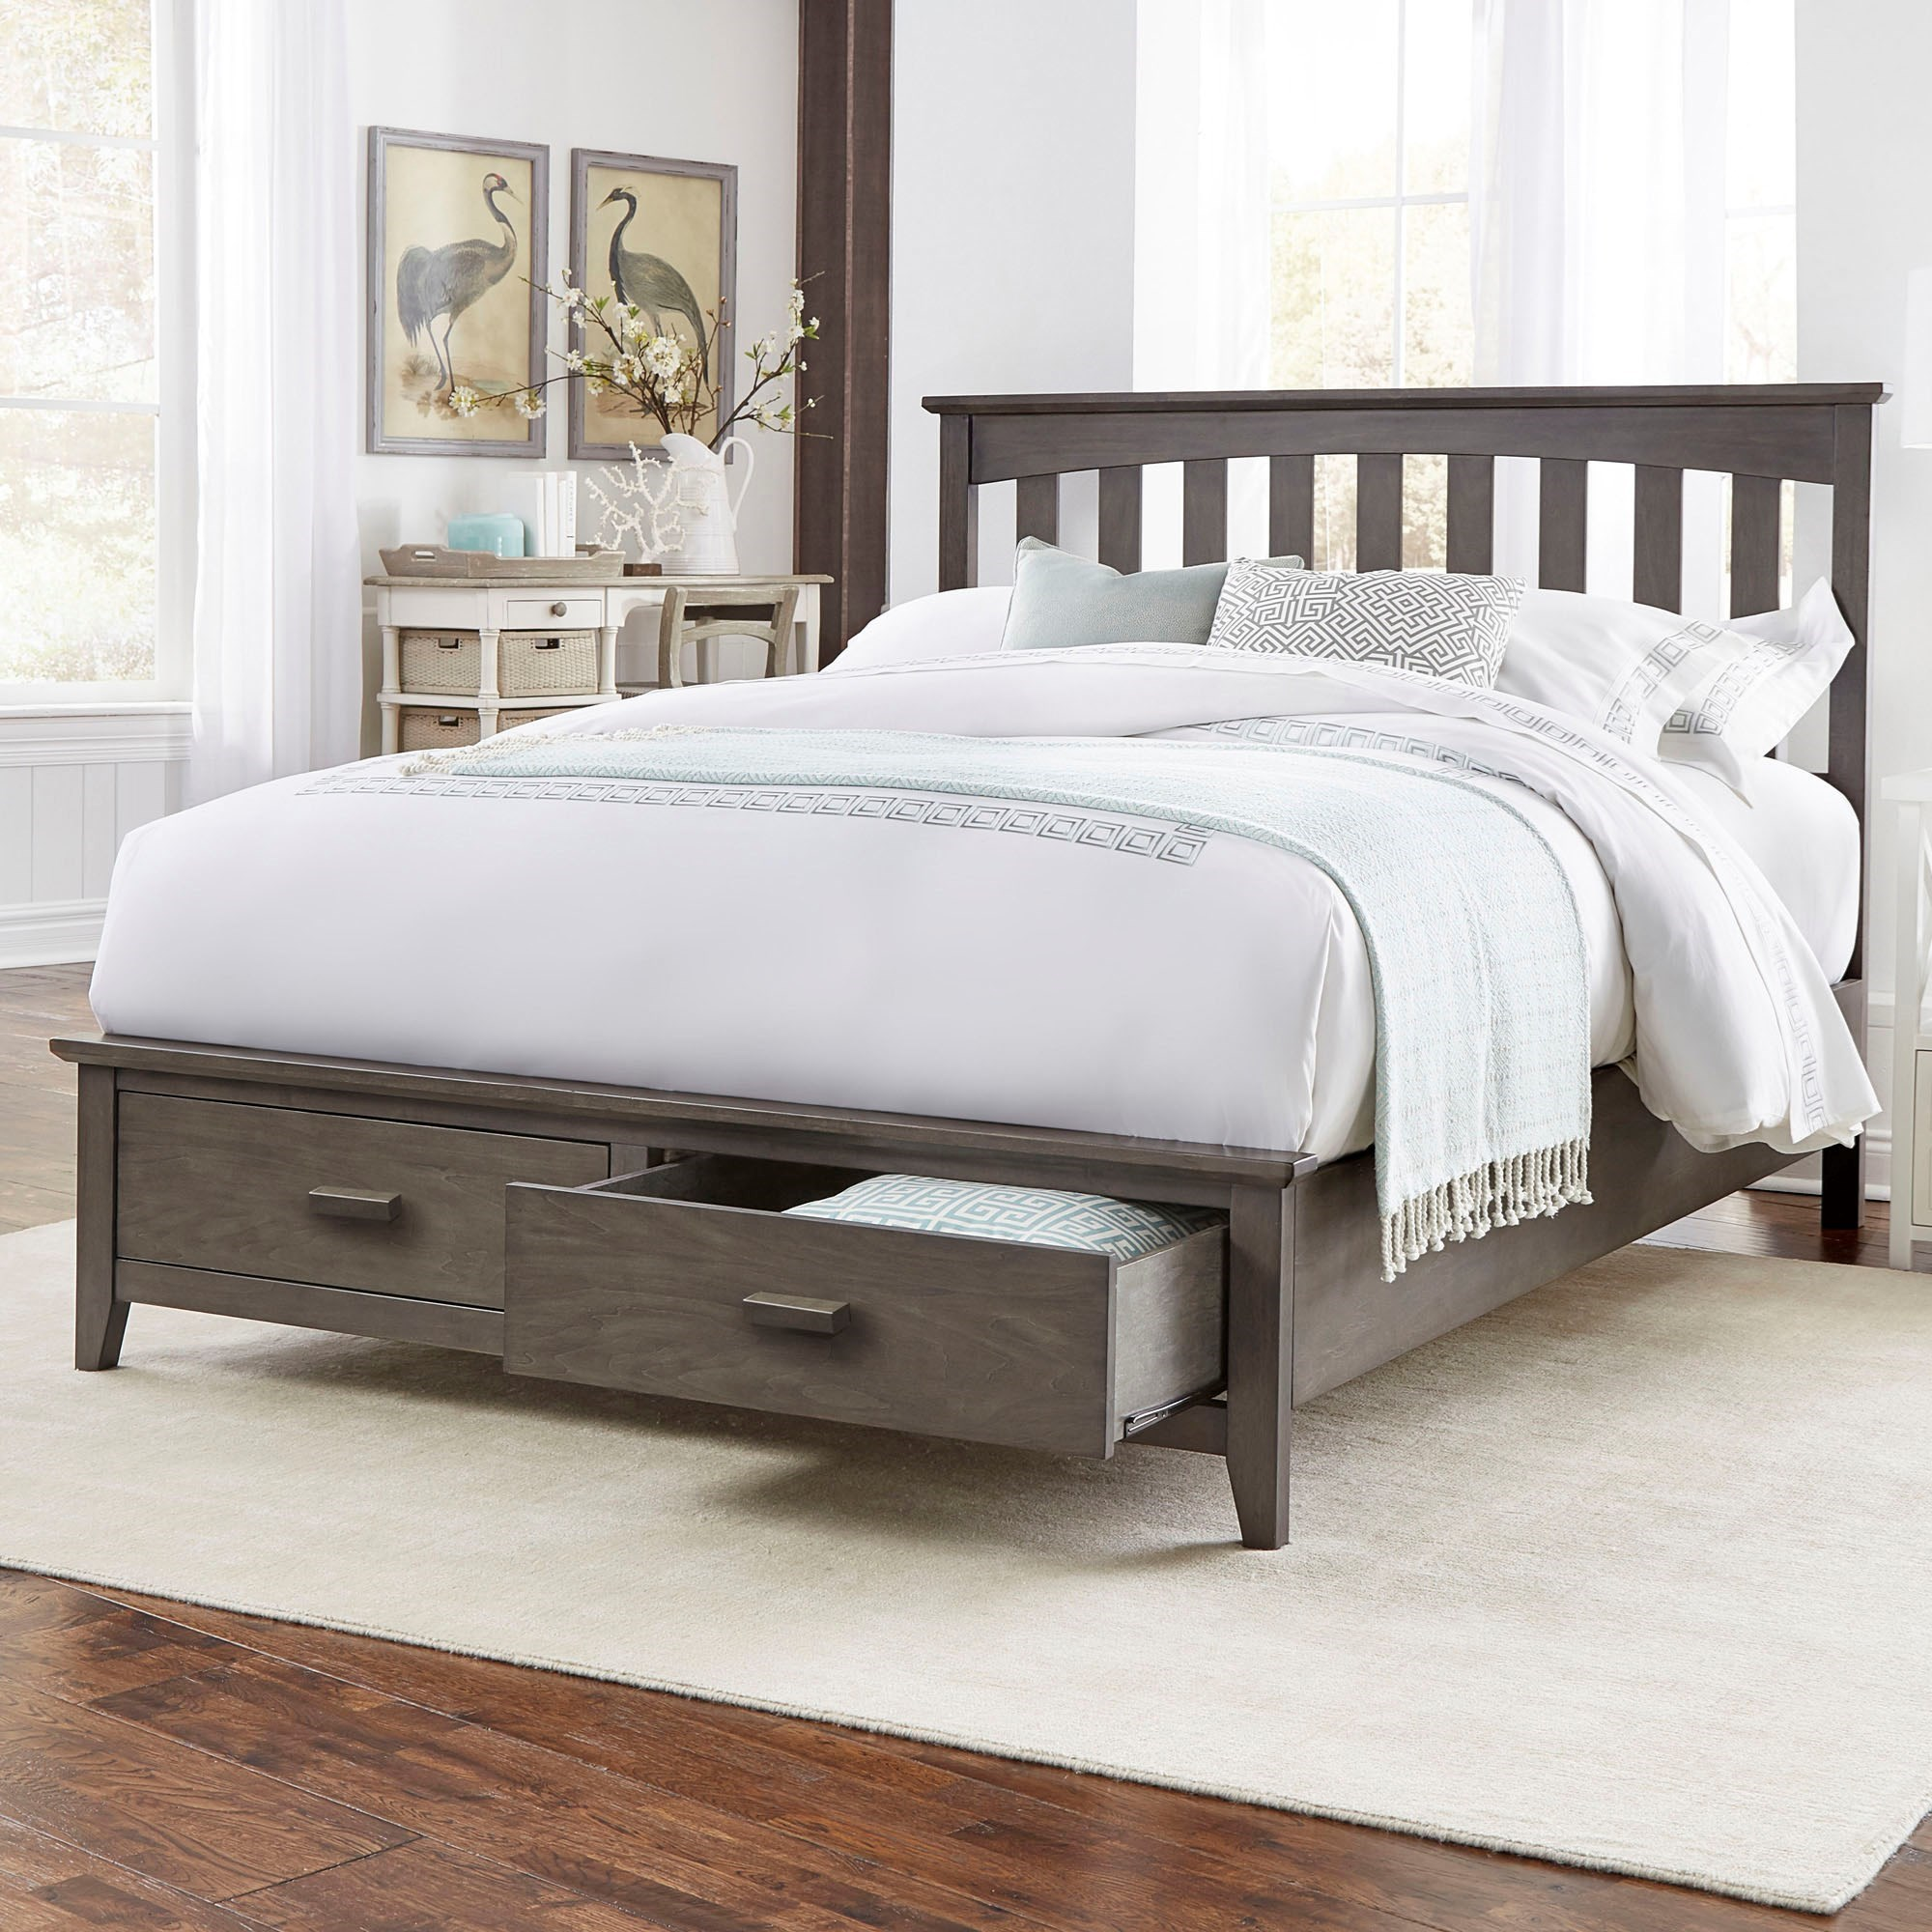 Fashion Bed Group Hampton Twin Storage Bed - Item Number: B21163